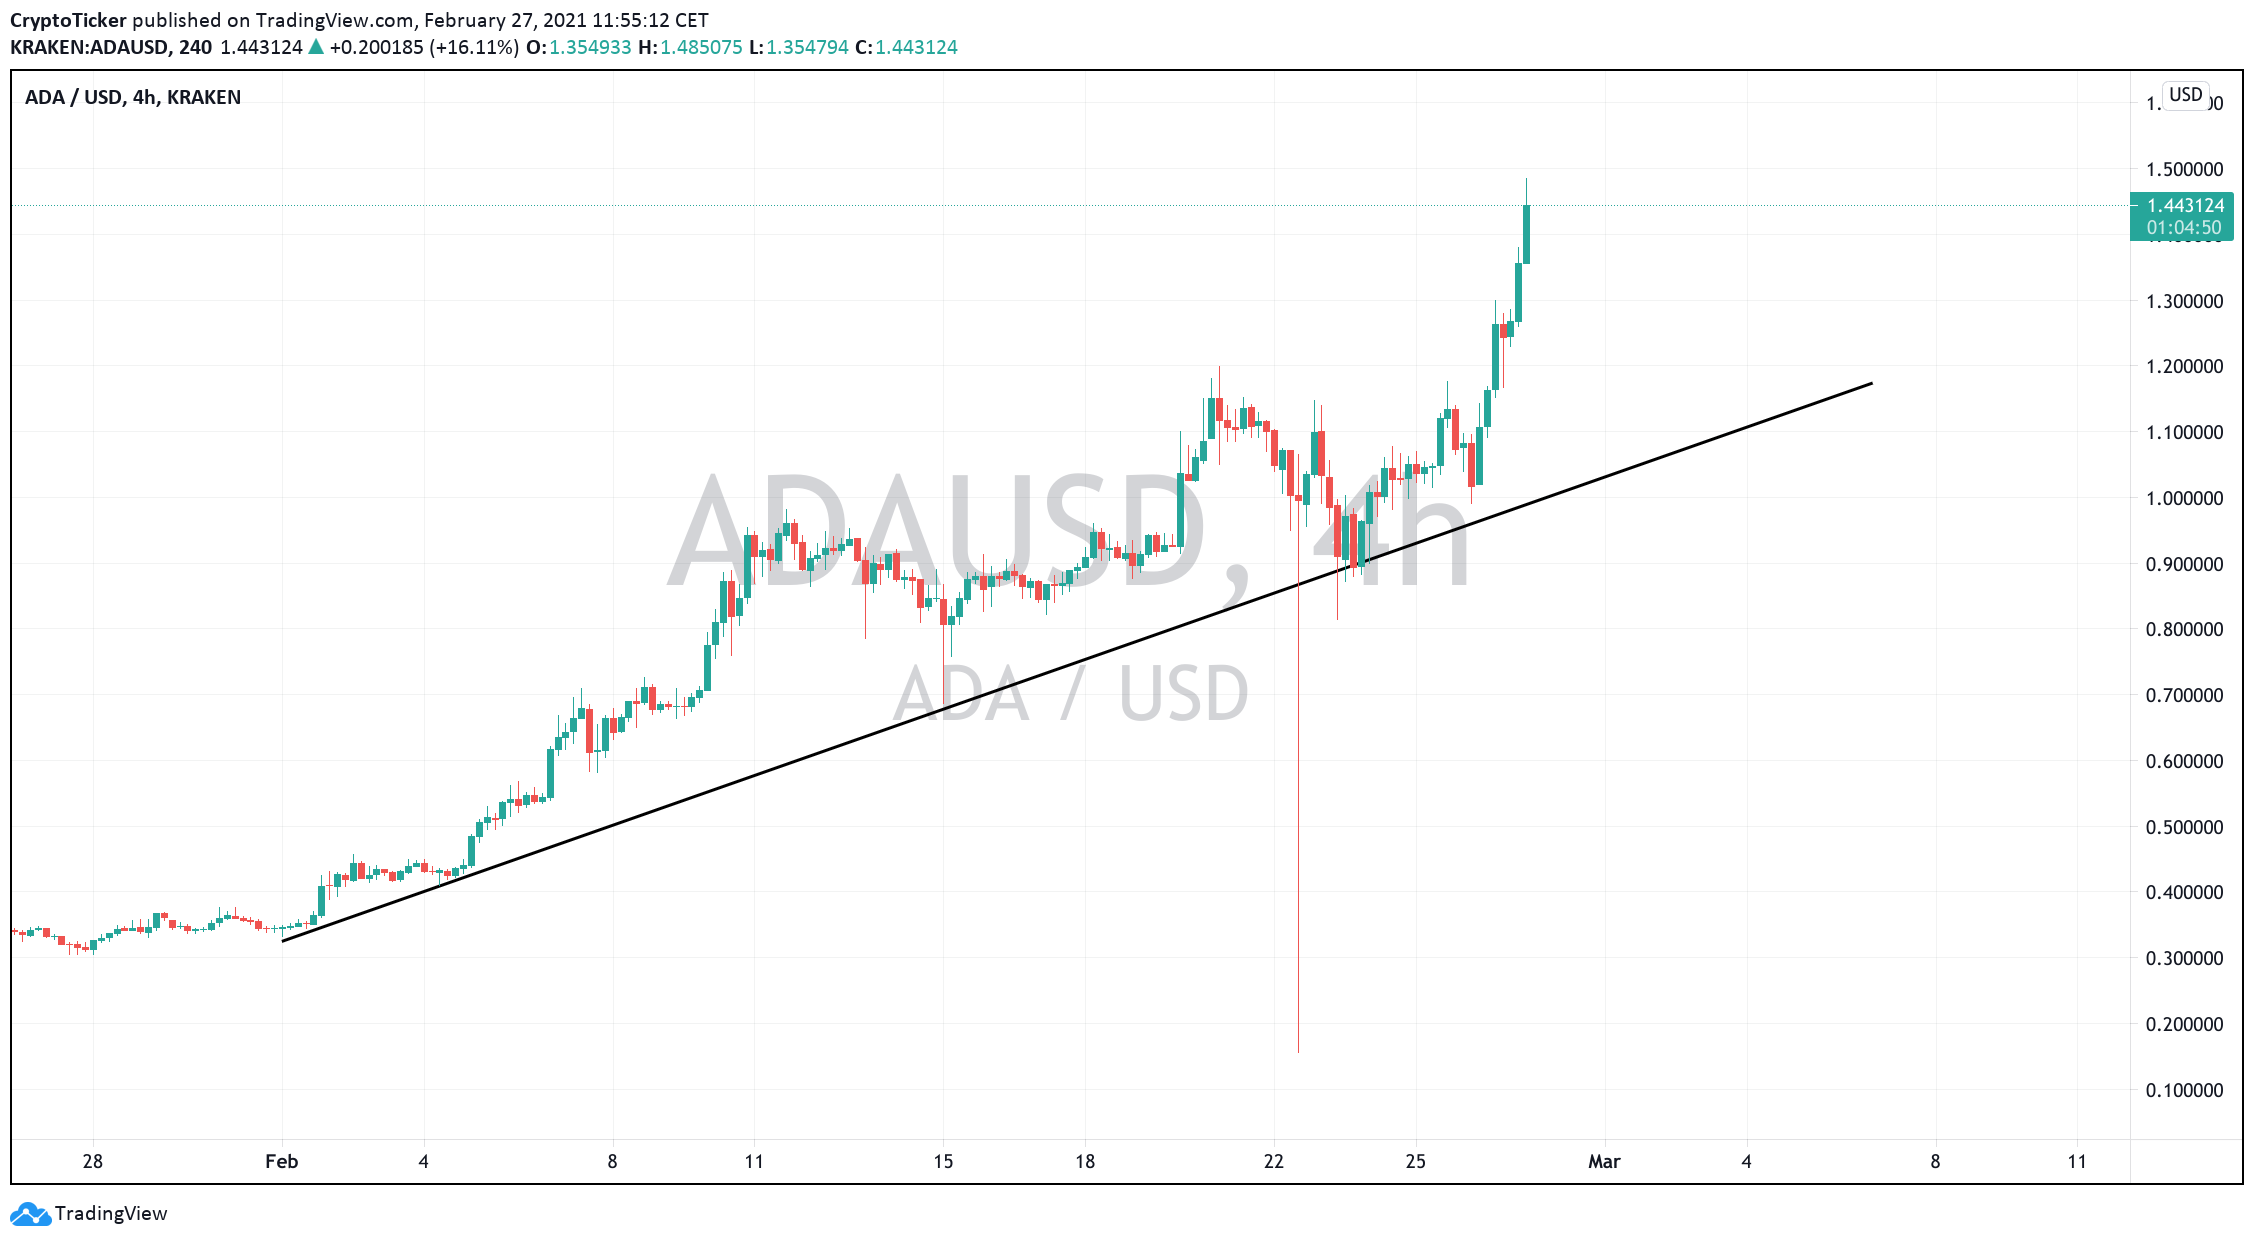 ADA/USD 4-hours chart showing a healthy uptrend